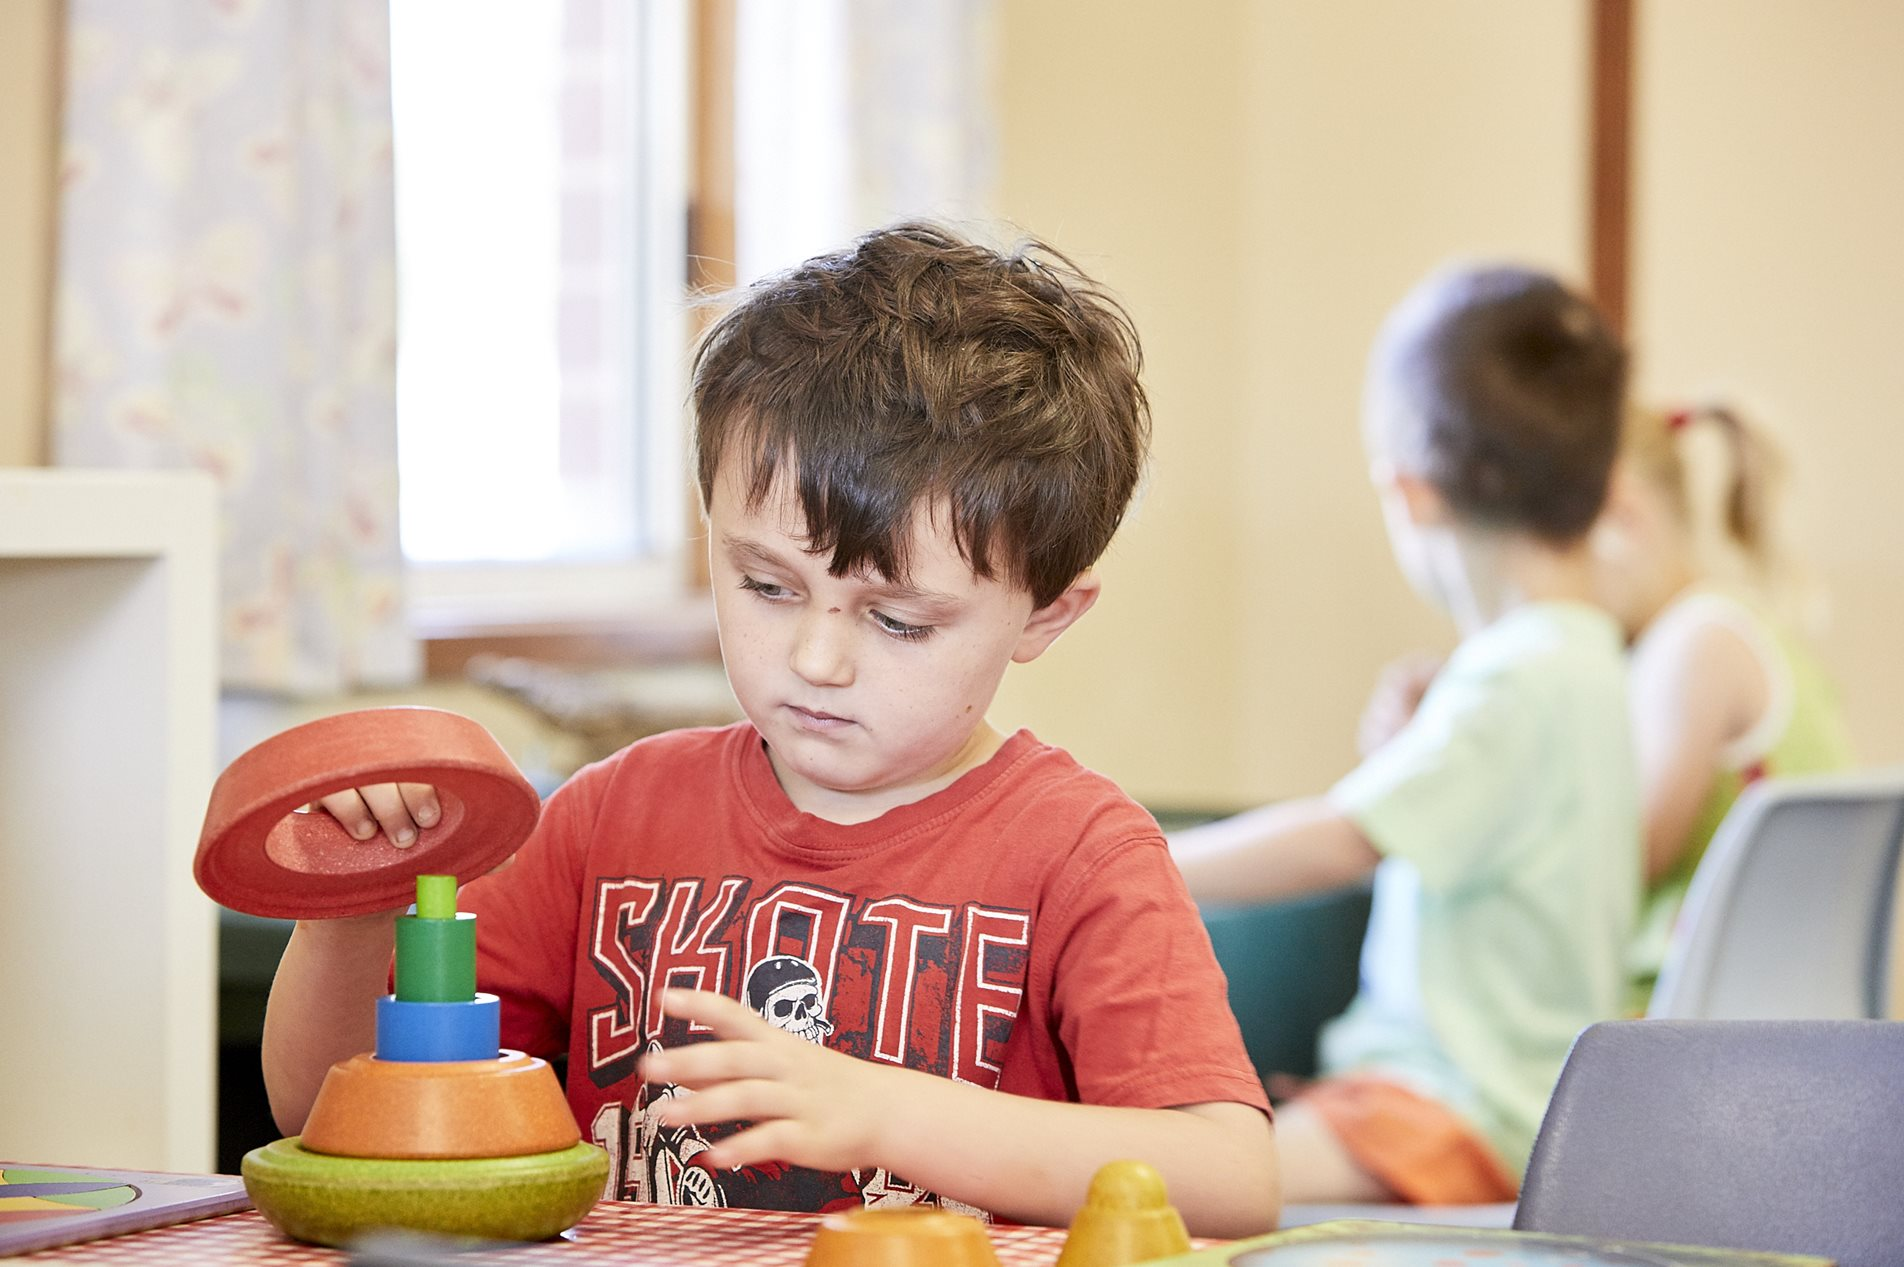 Child concentrating on building blocks in classroom